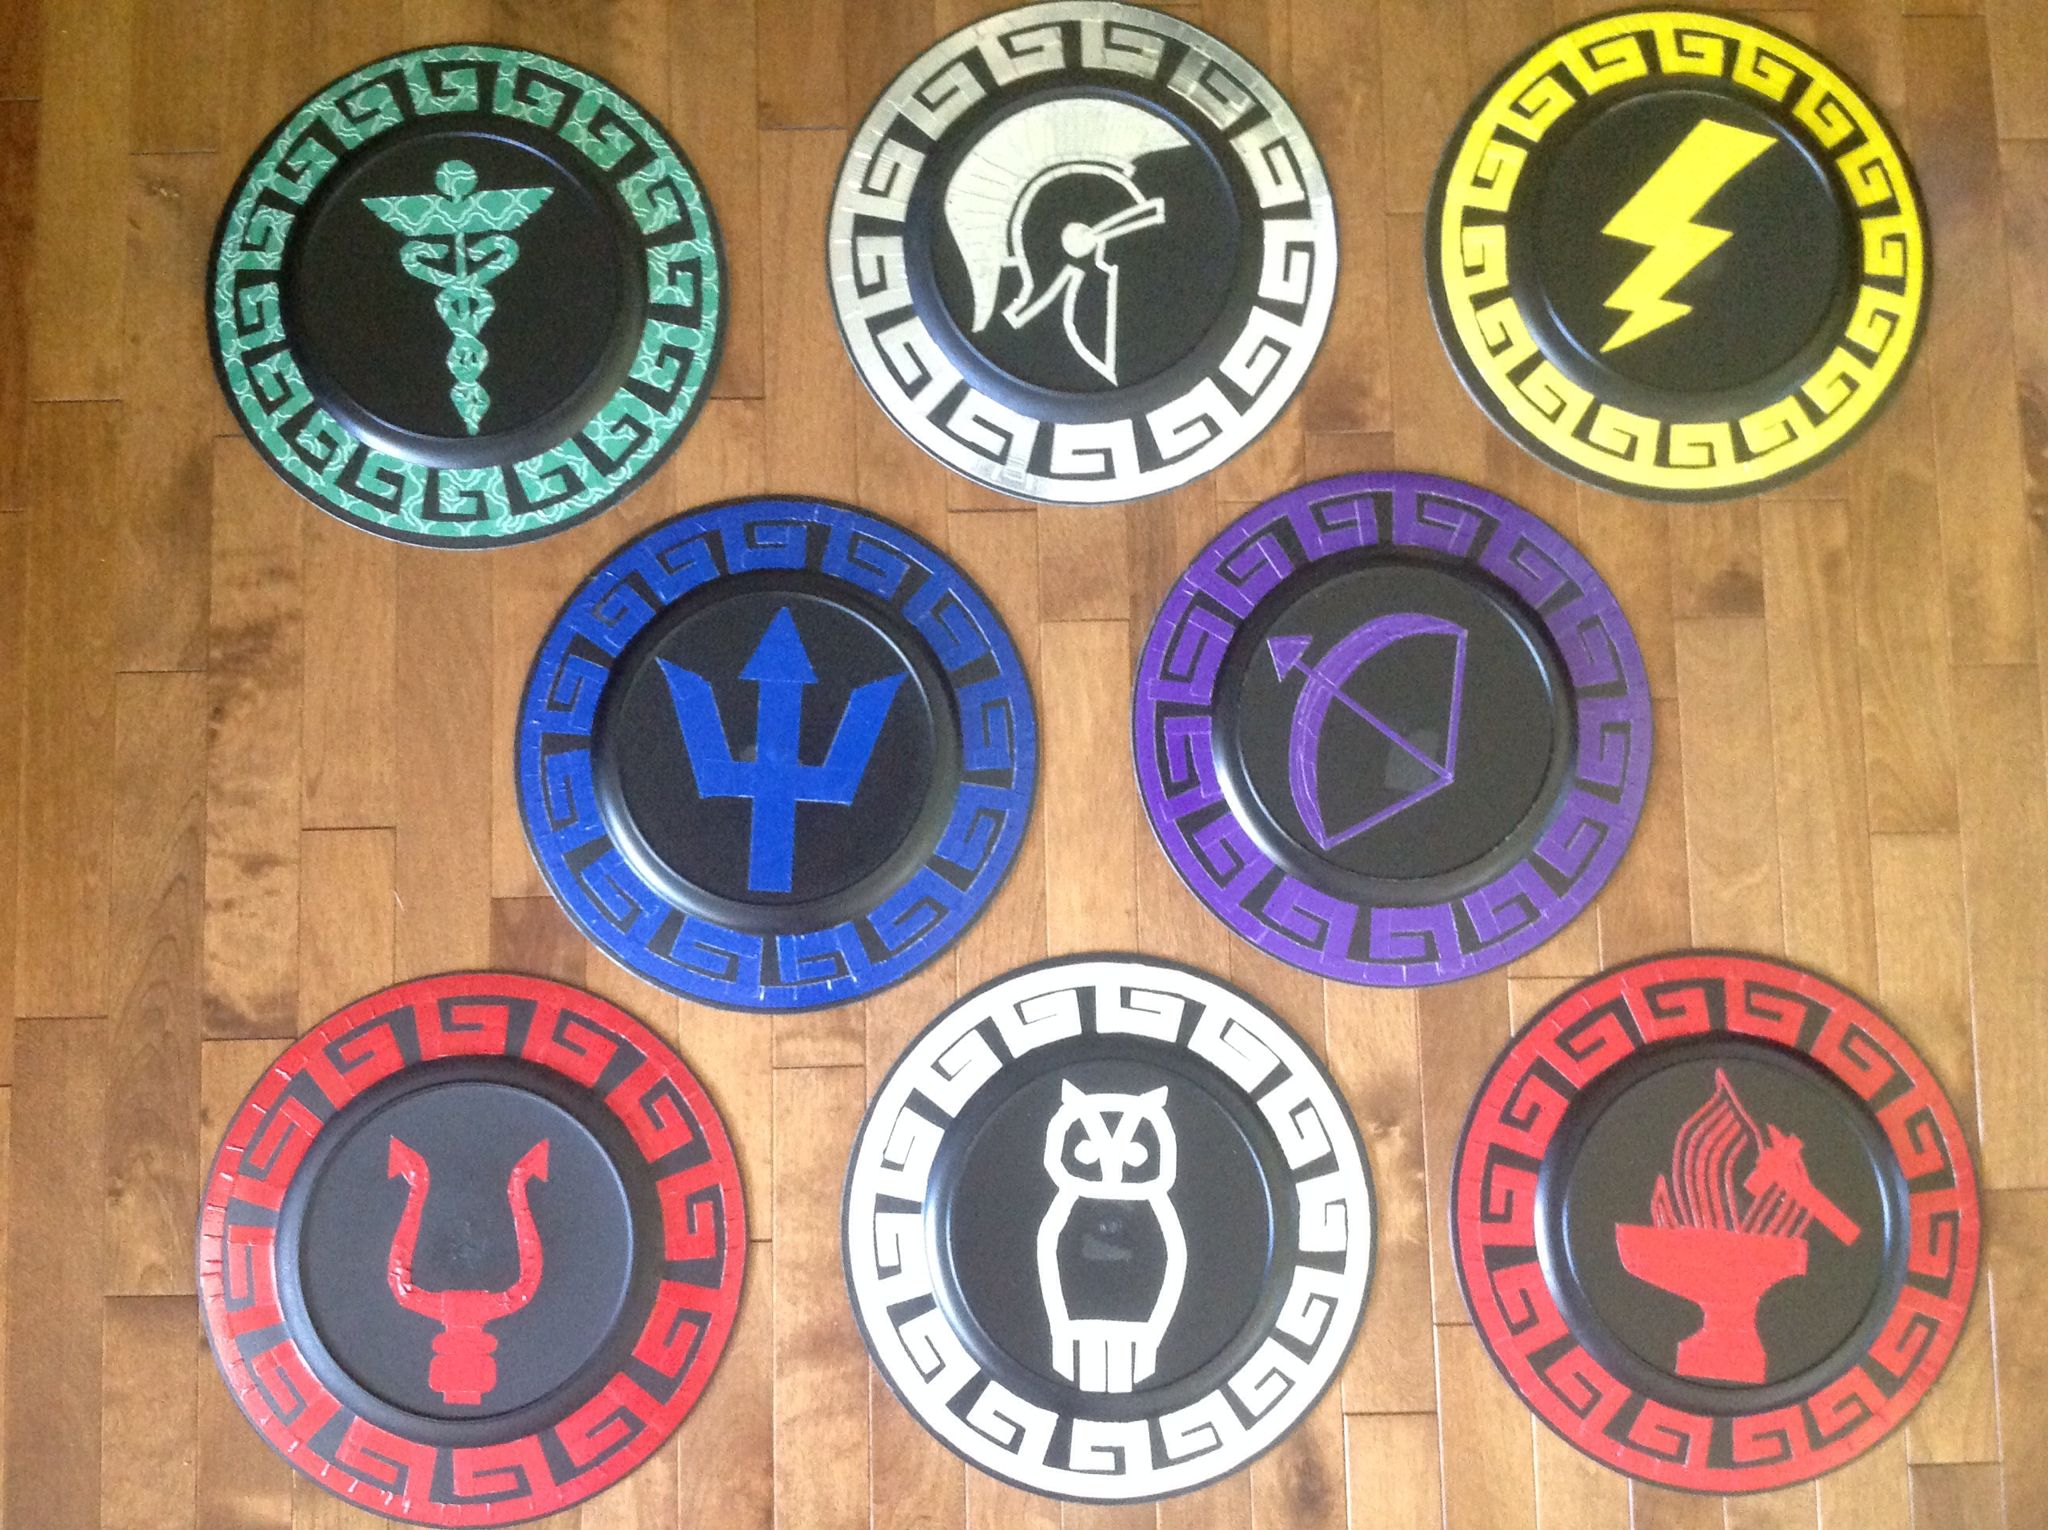 Percy jackson inspired shields hermes ares zeus poseidon hermes ares zeus poseidon artemis hades athena and hephaestus symbols with greek borders made these with colored duct tape on 13 inch diameter biocorpaavc Gallery